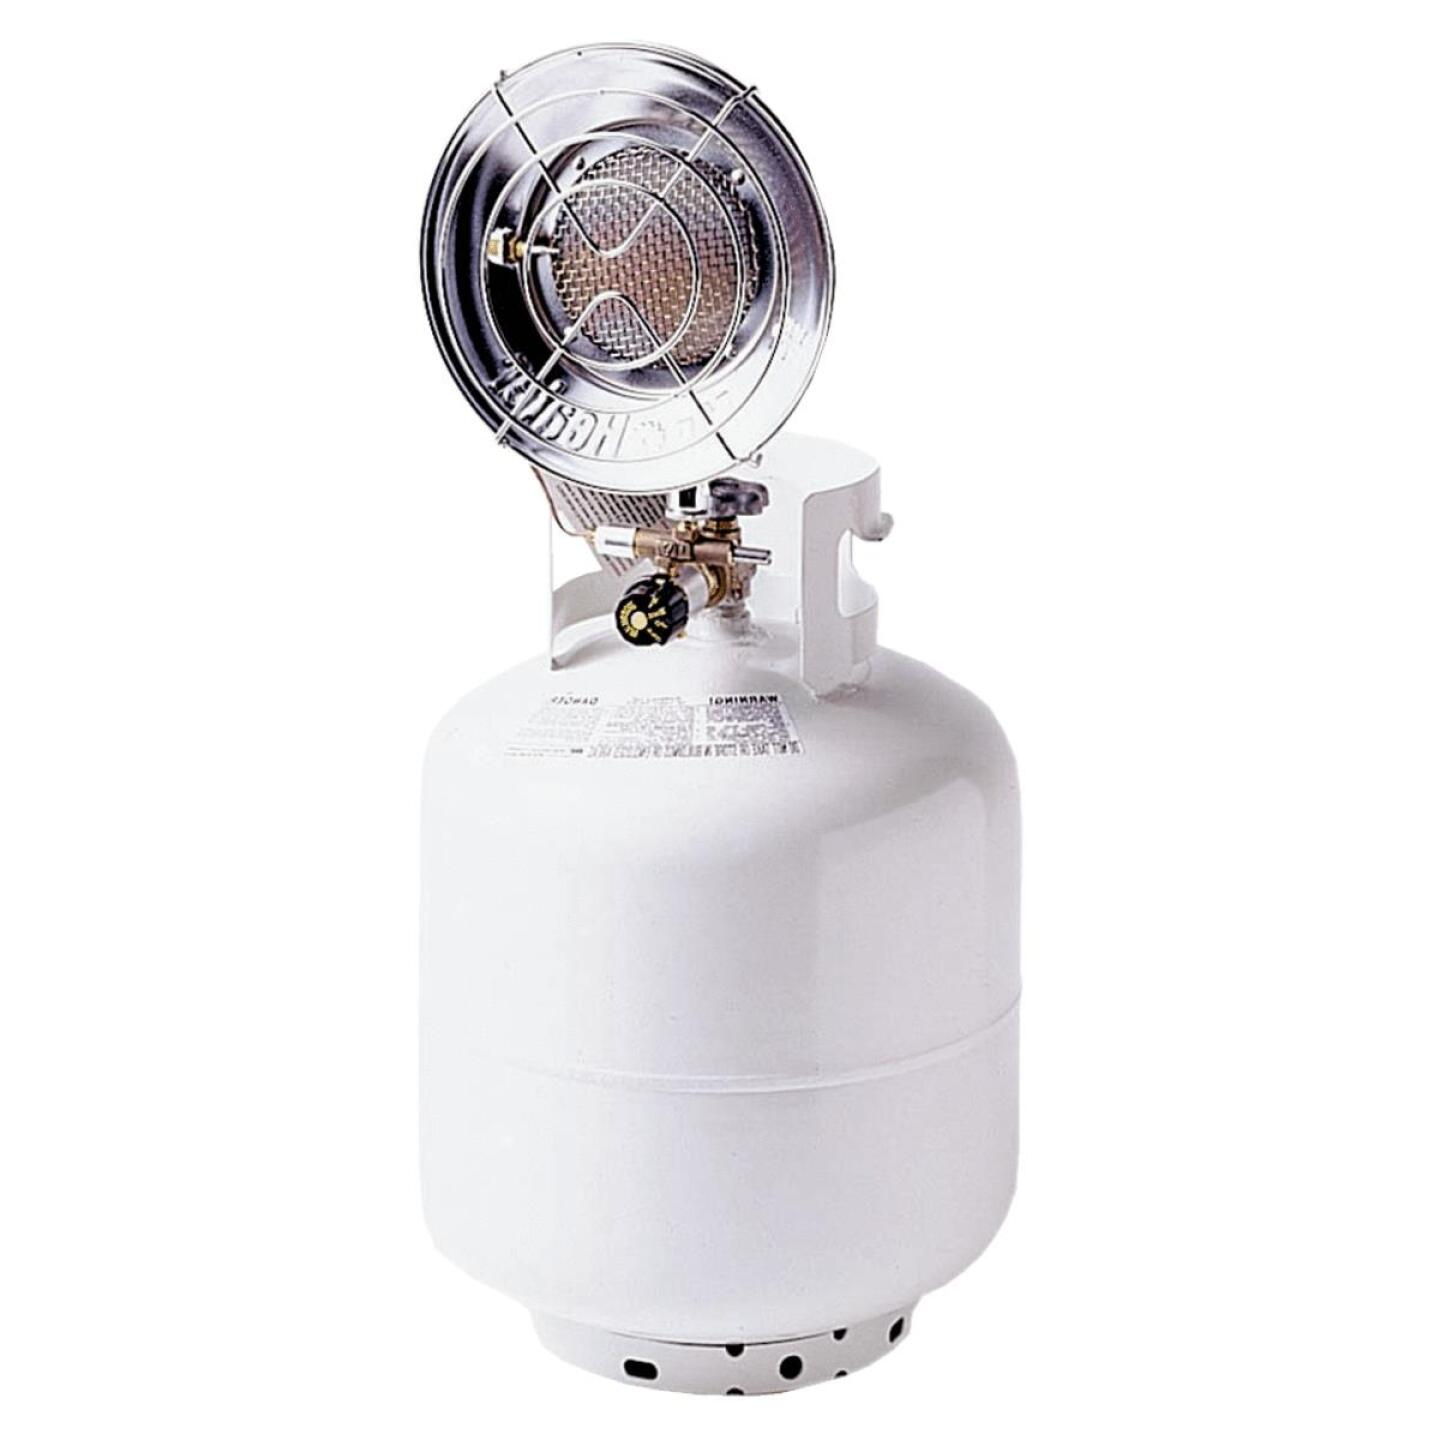 MR. HEATER 15,000 BTU Radiant Single Tank Top Propane Heater Image 5